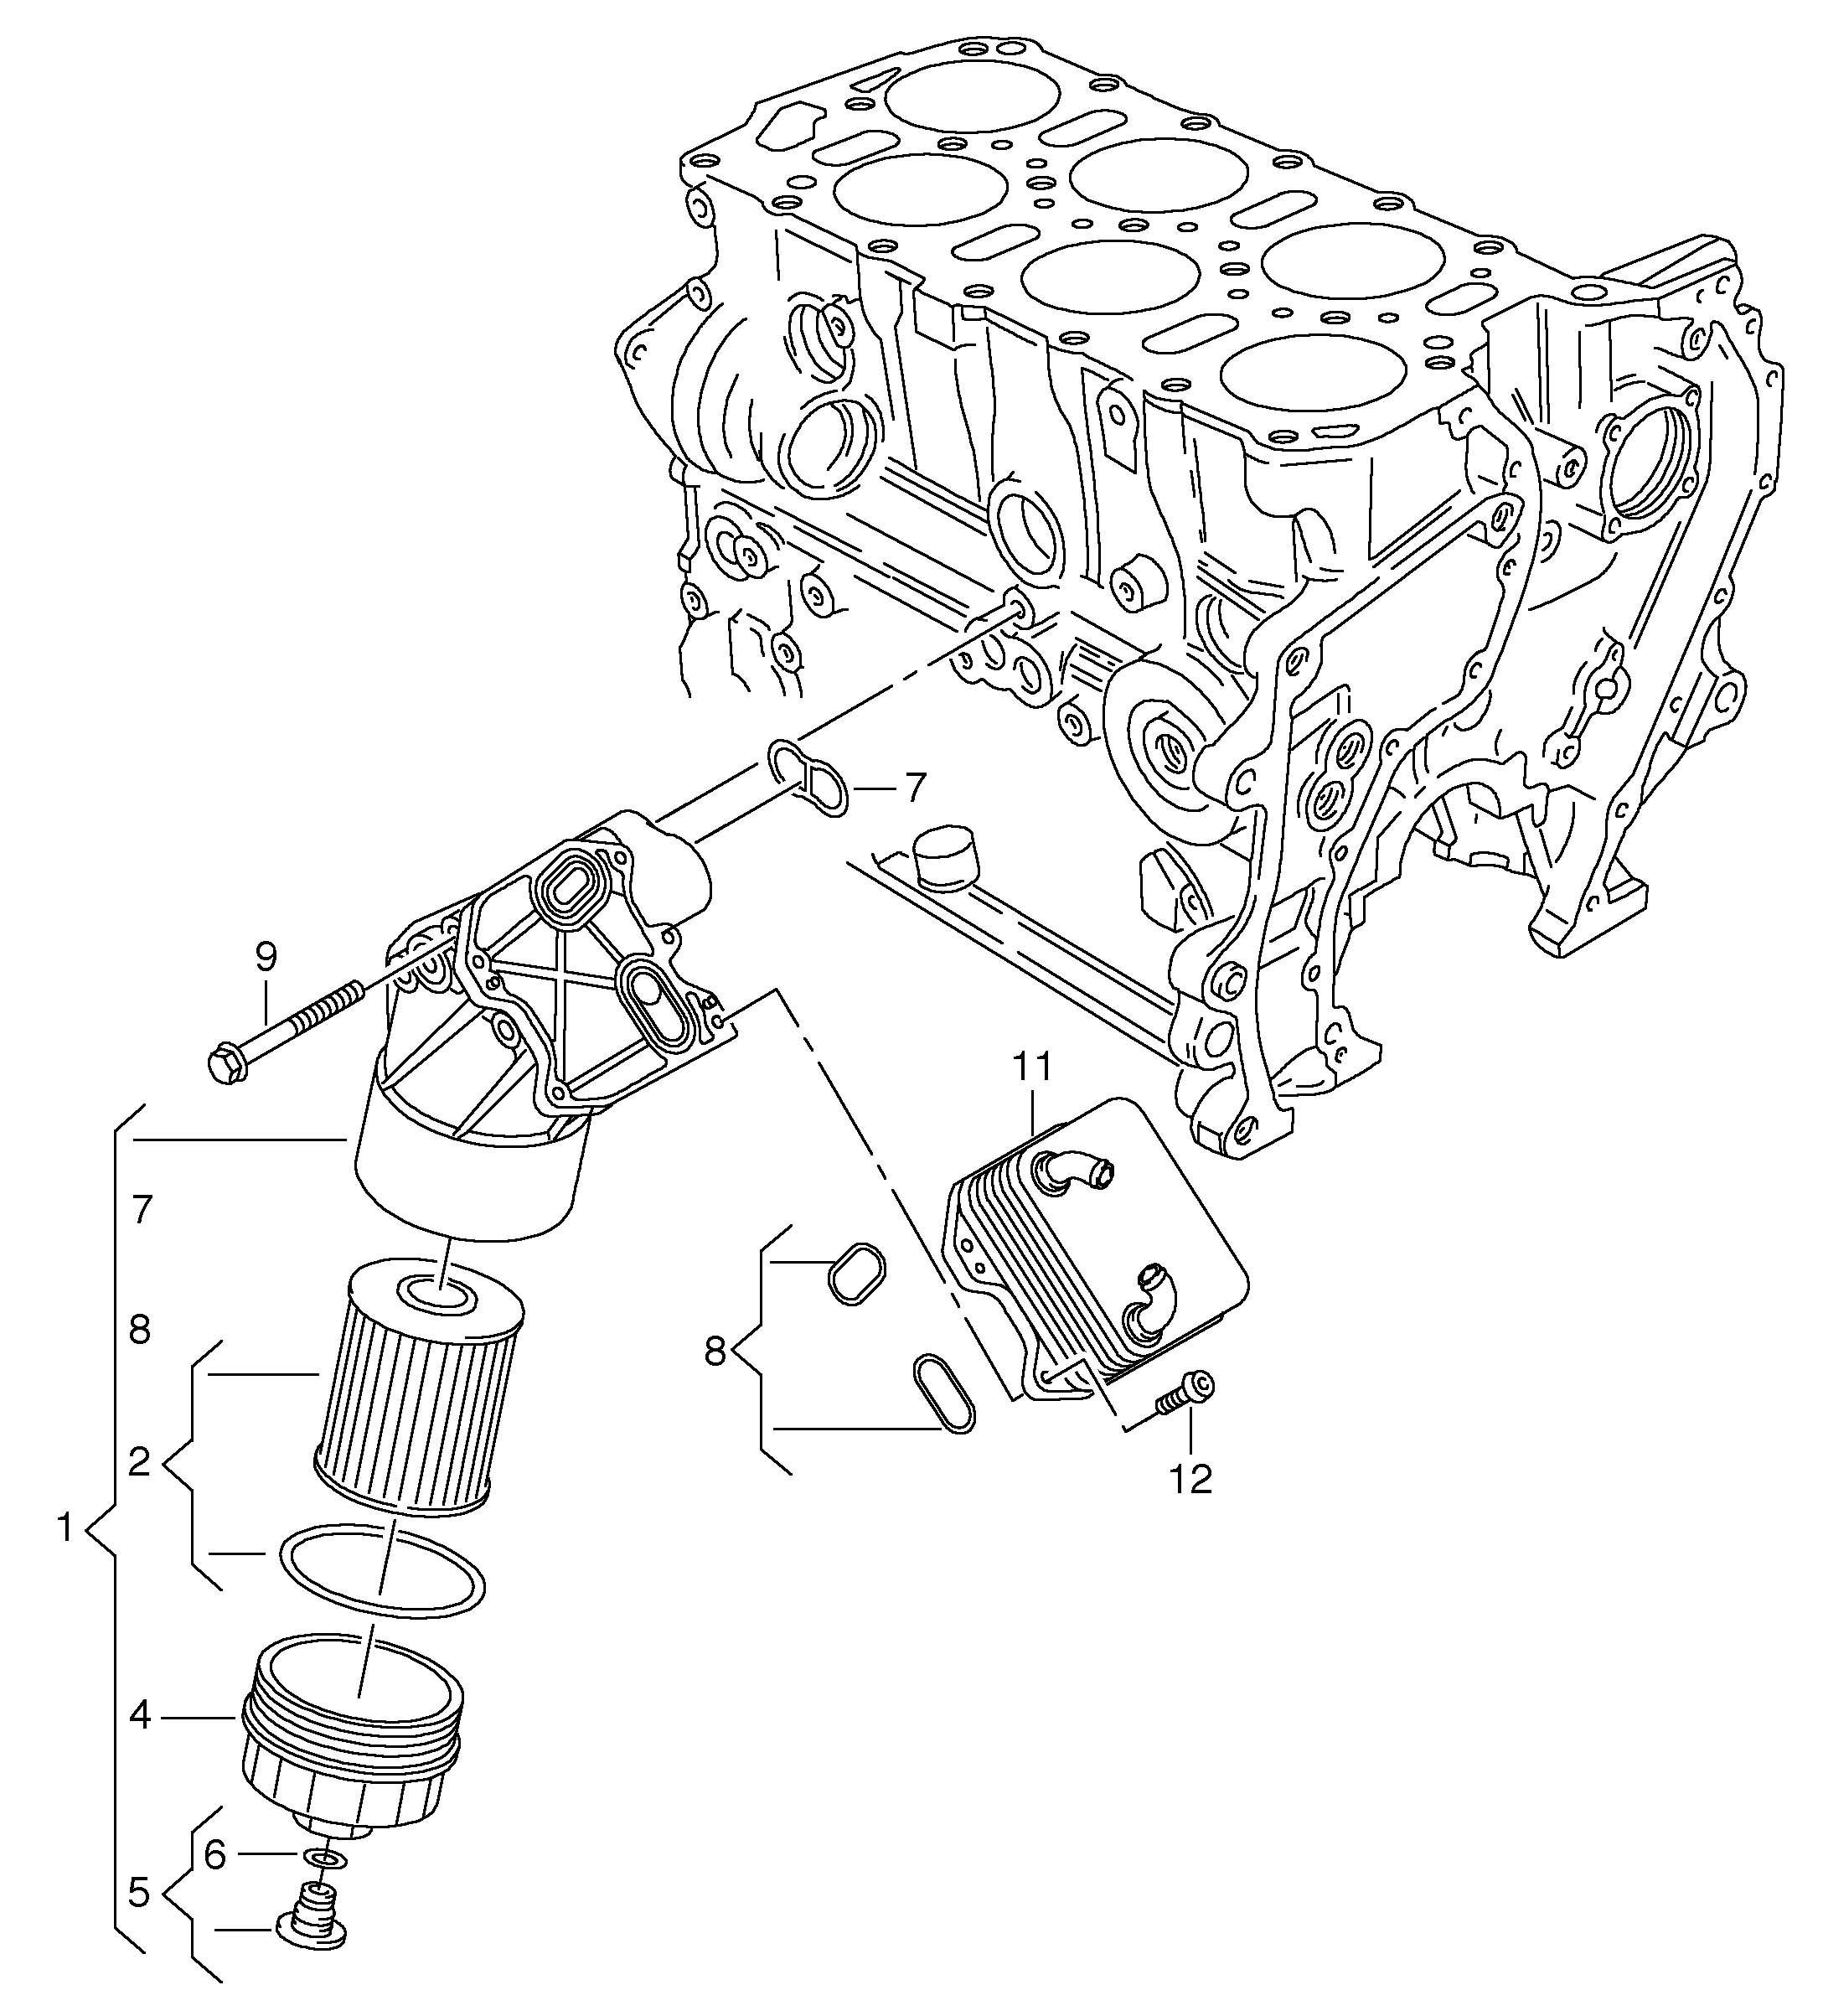 ford tractor cav injector pump parts diagram likewise 7 3 powerstroke  turbo exhaust diagram furthermore mercruiser